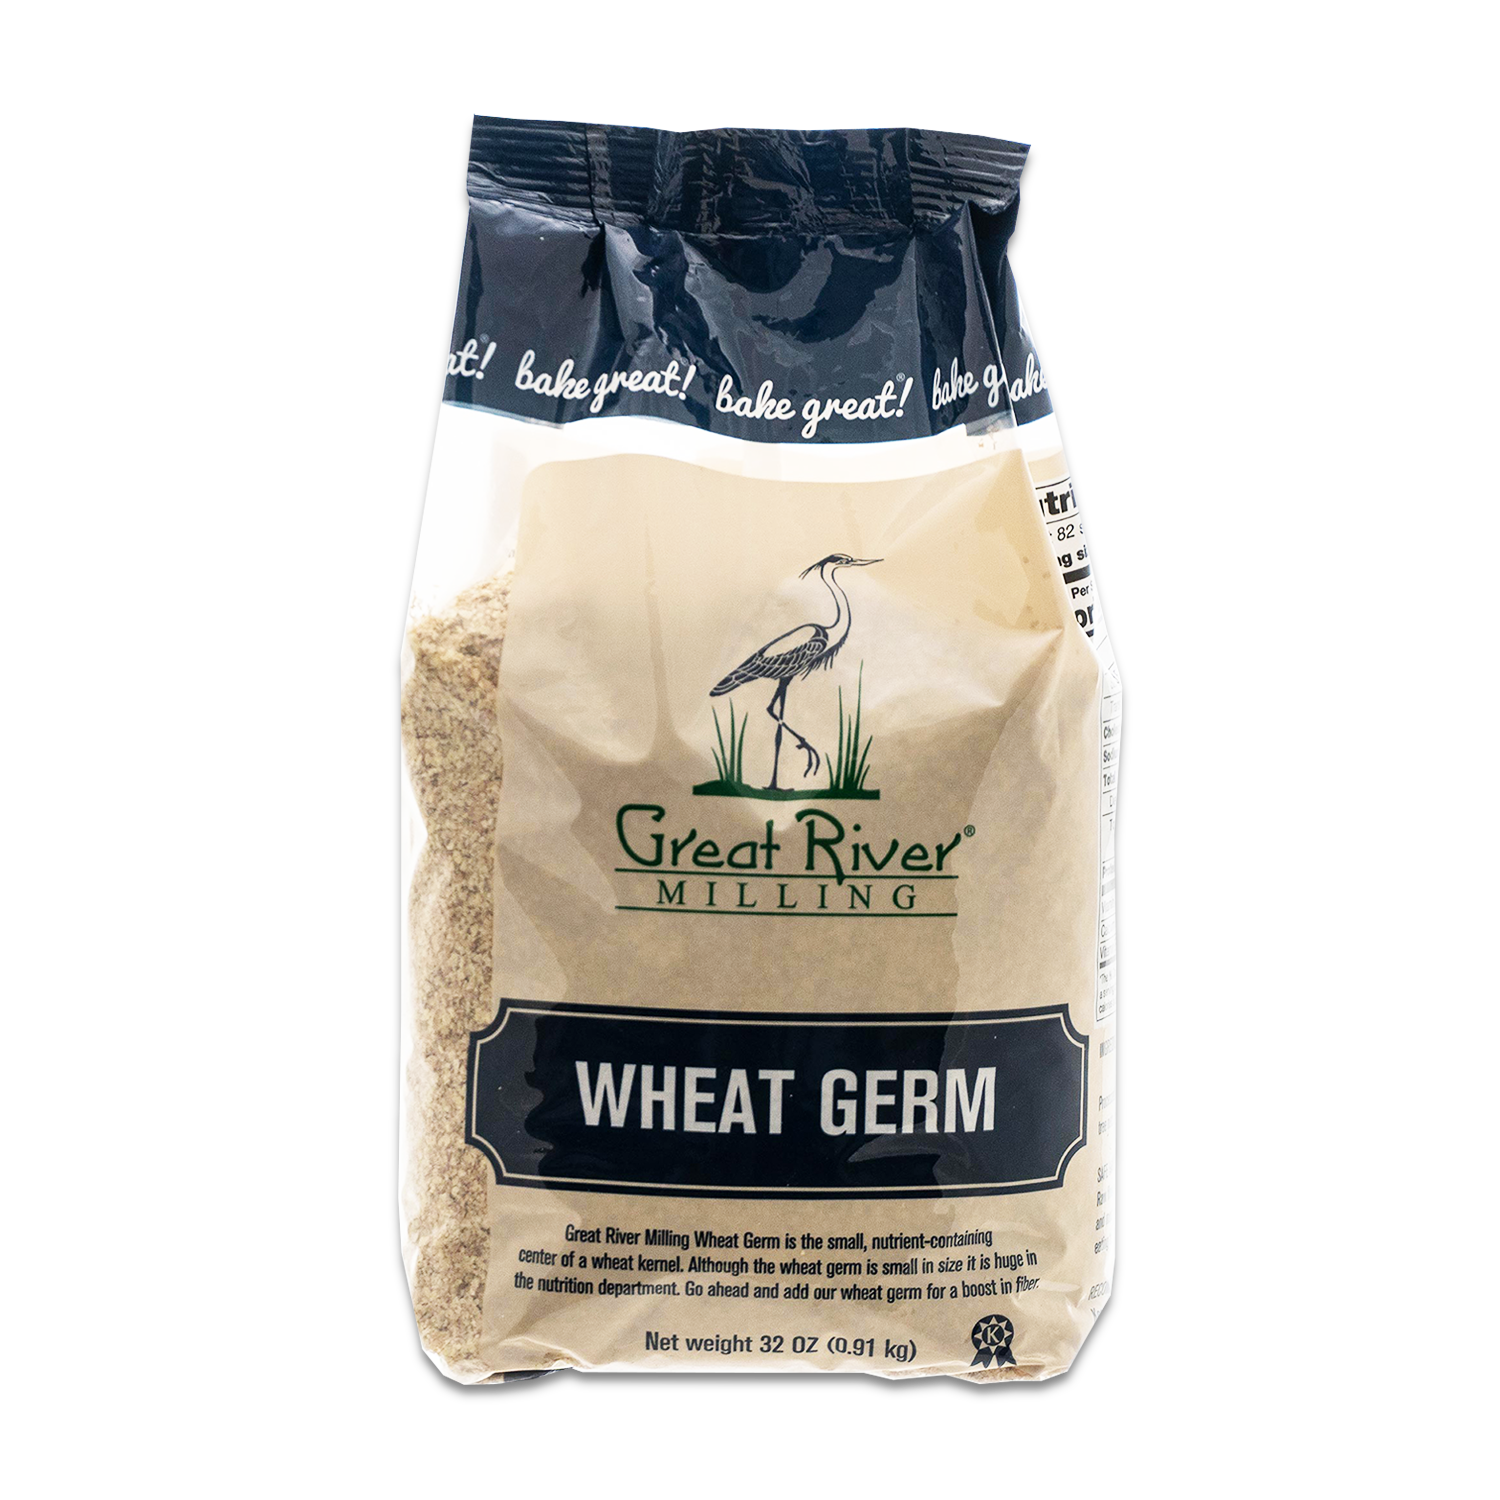 WHEAT GERM   The Natural Products Brands Directory